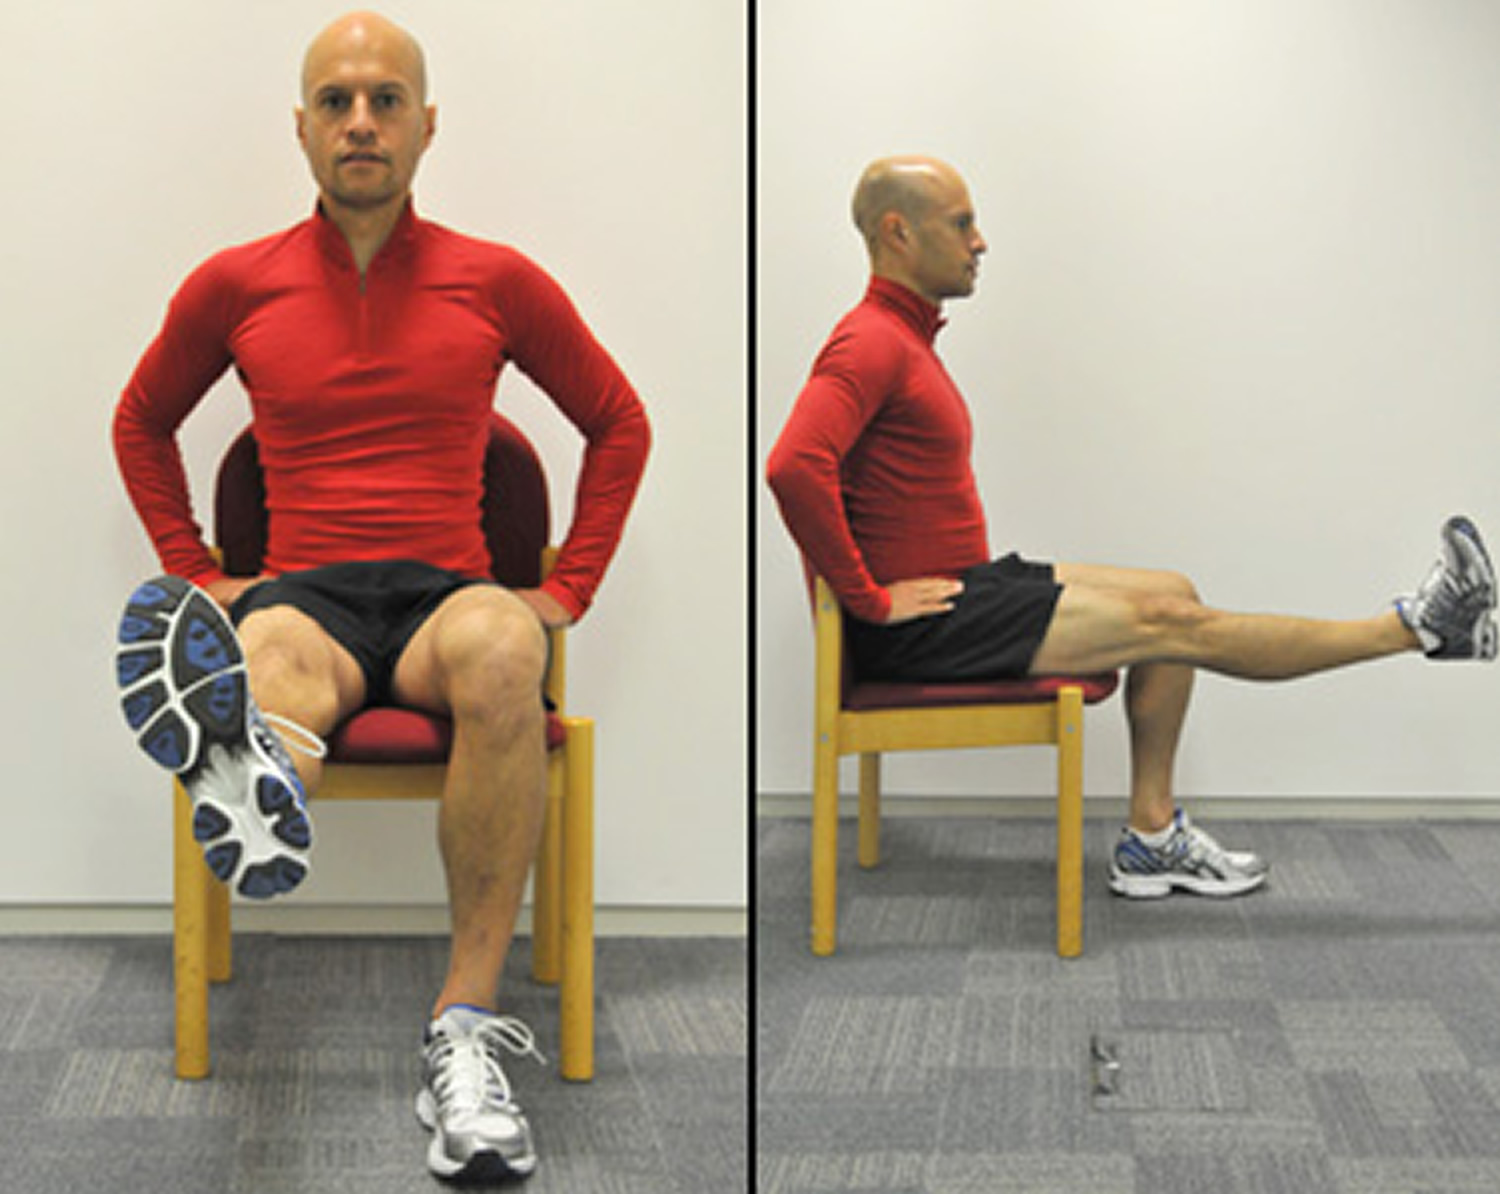 Thigh contraction exercise for knee pain